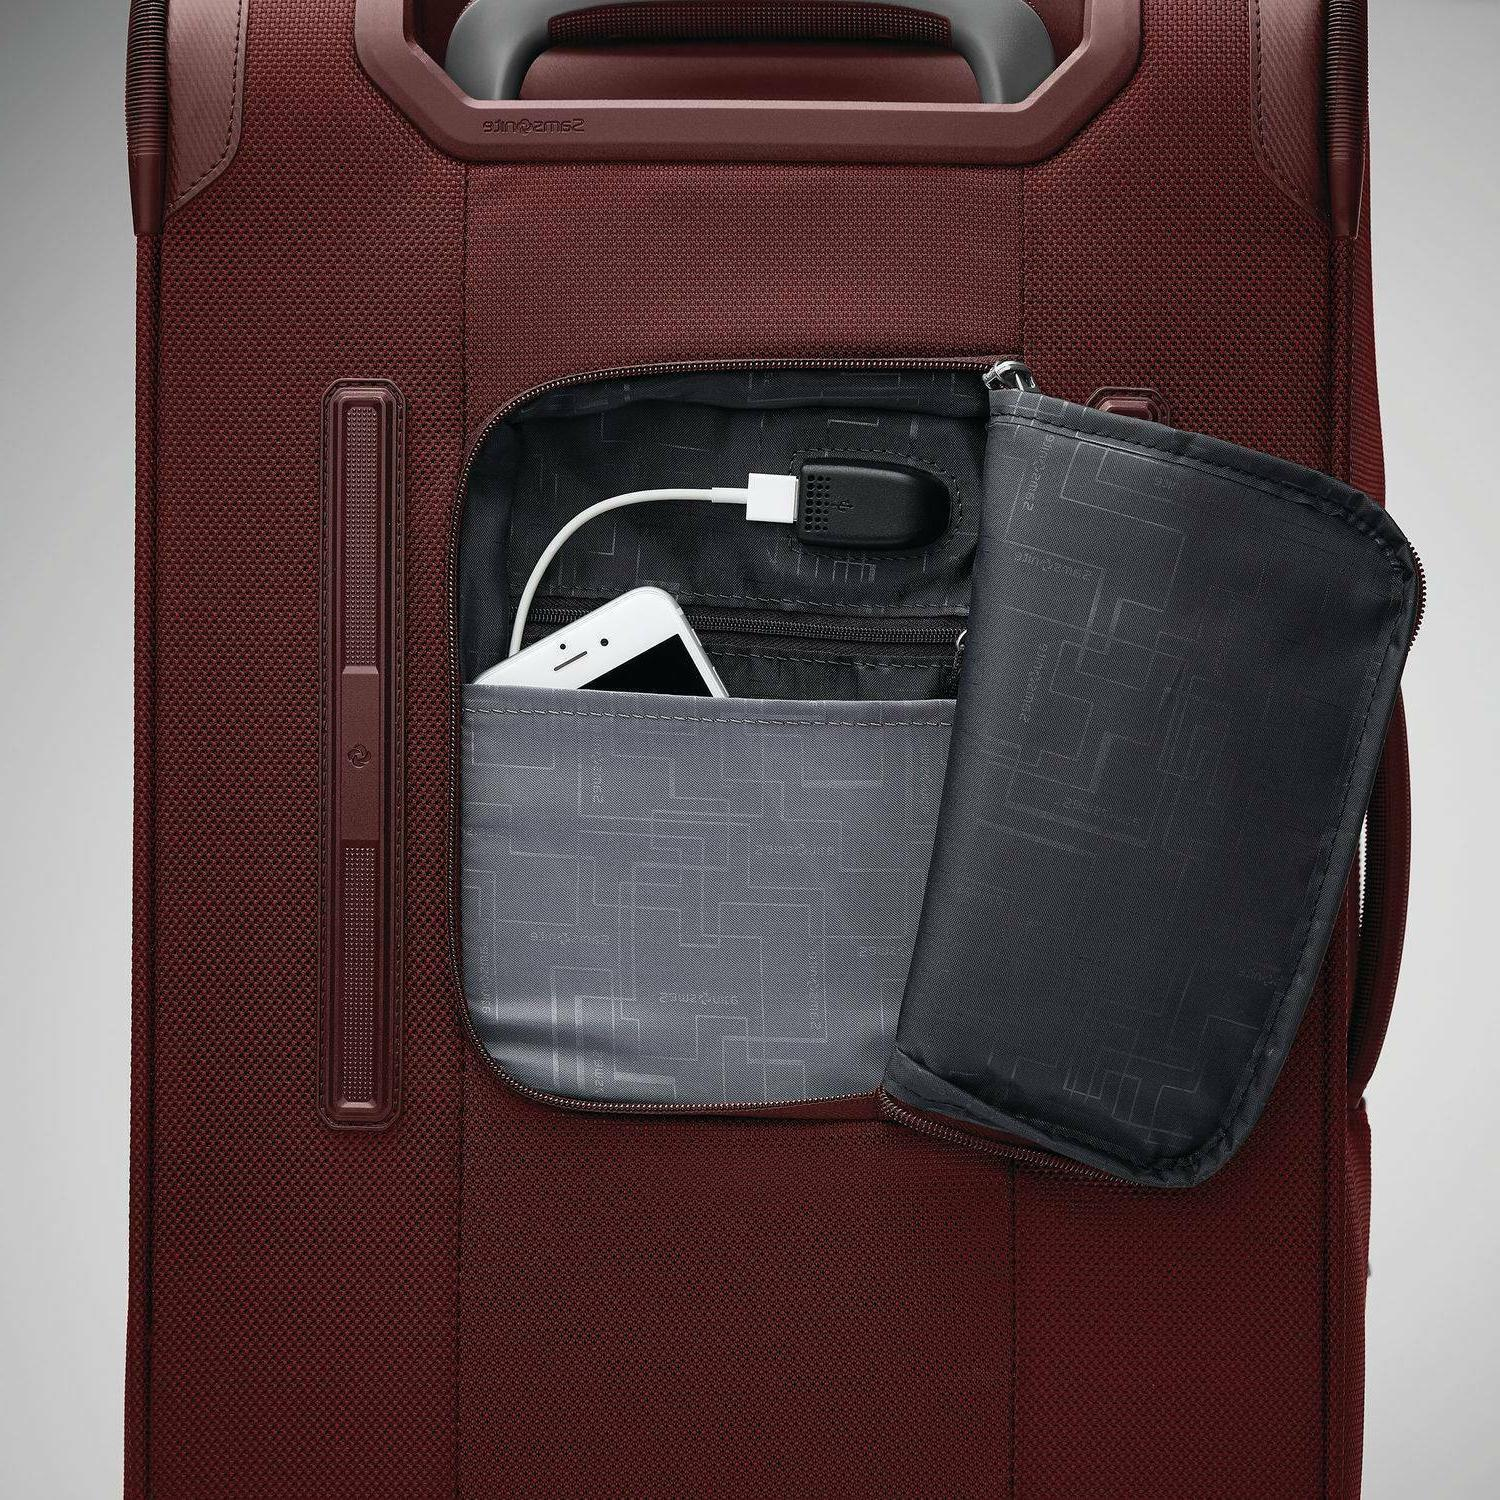 """Samsonite 22"""" Carry-On Luggage - Cabernet Red"""